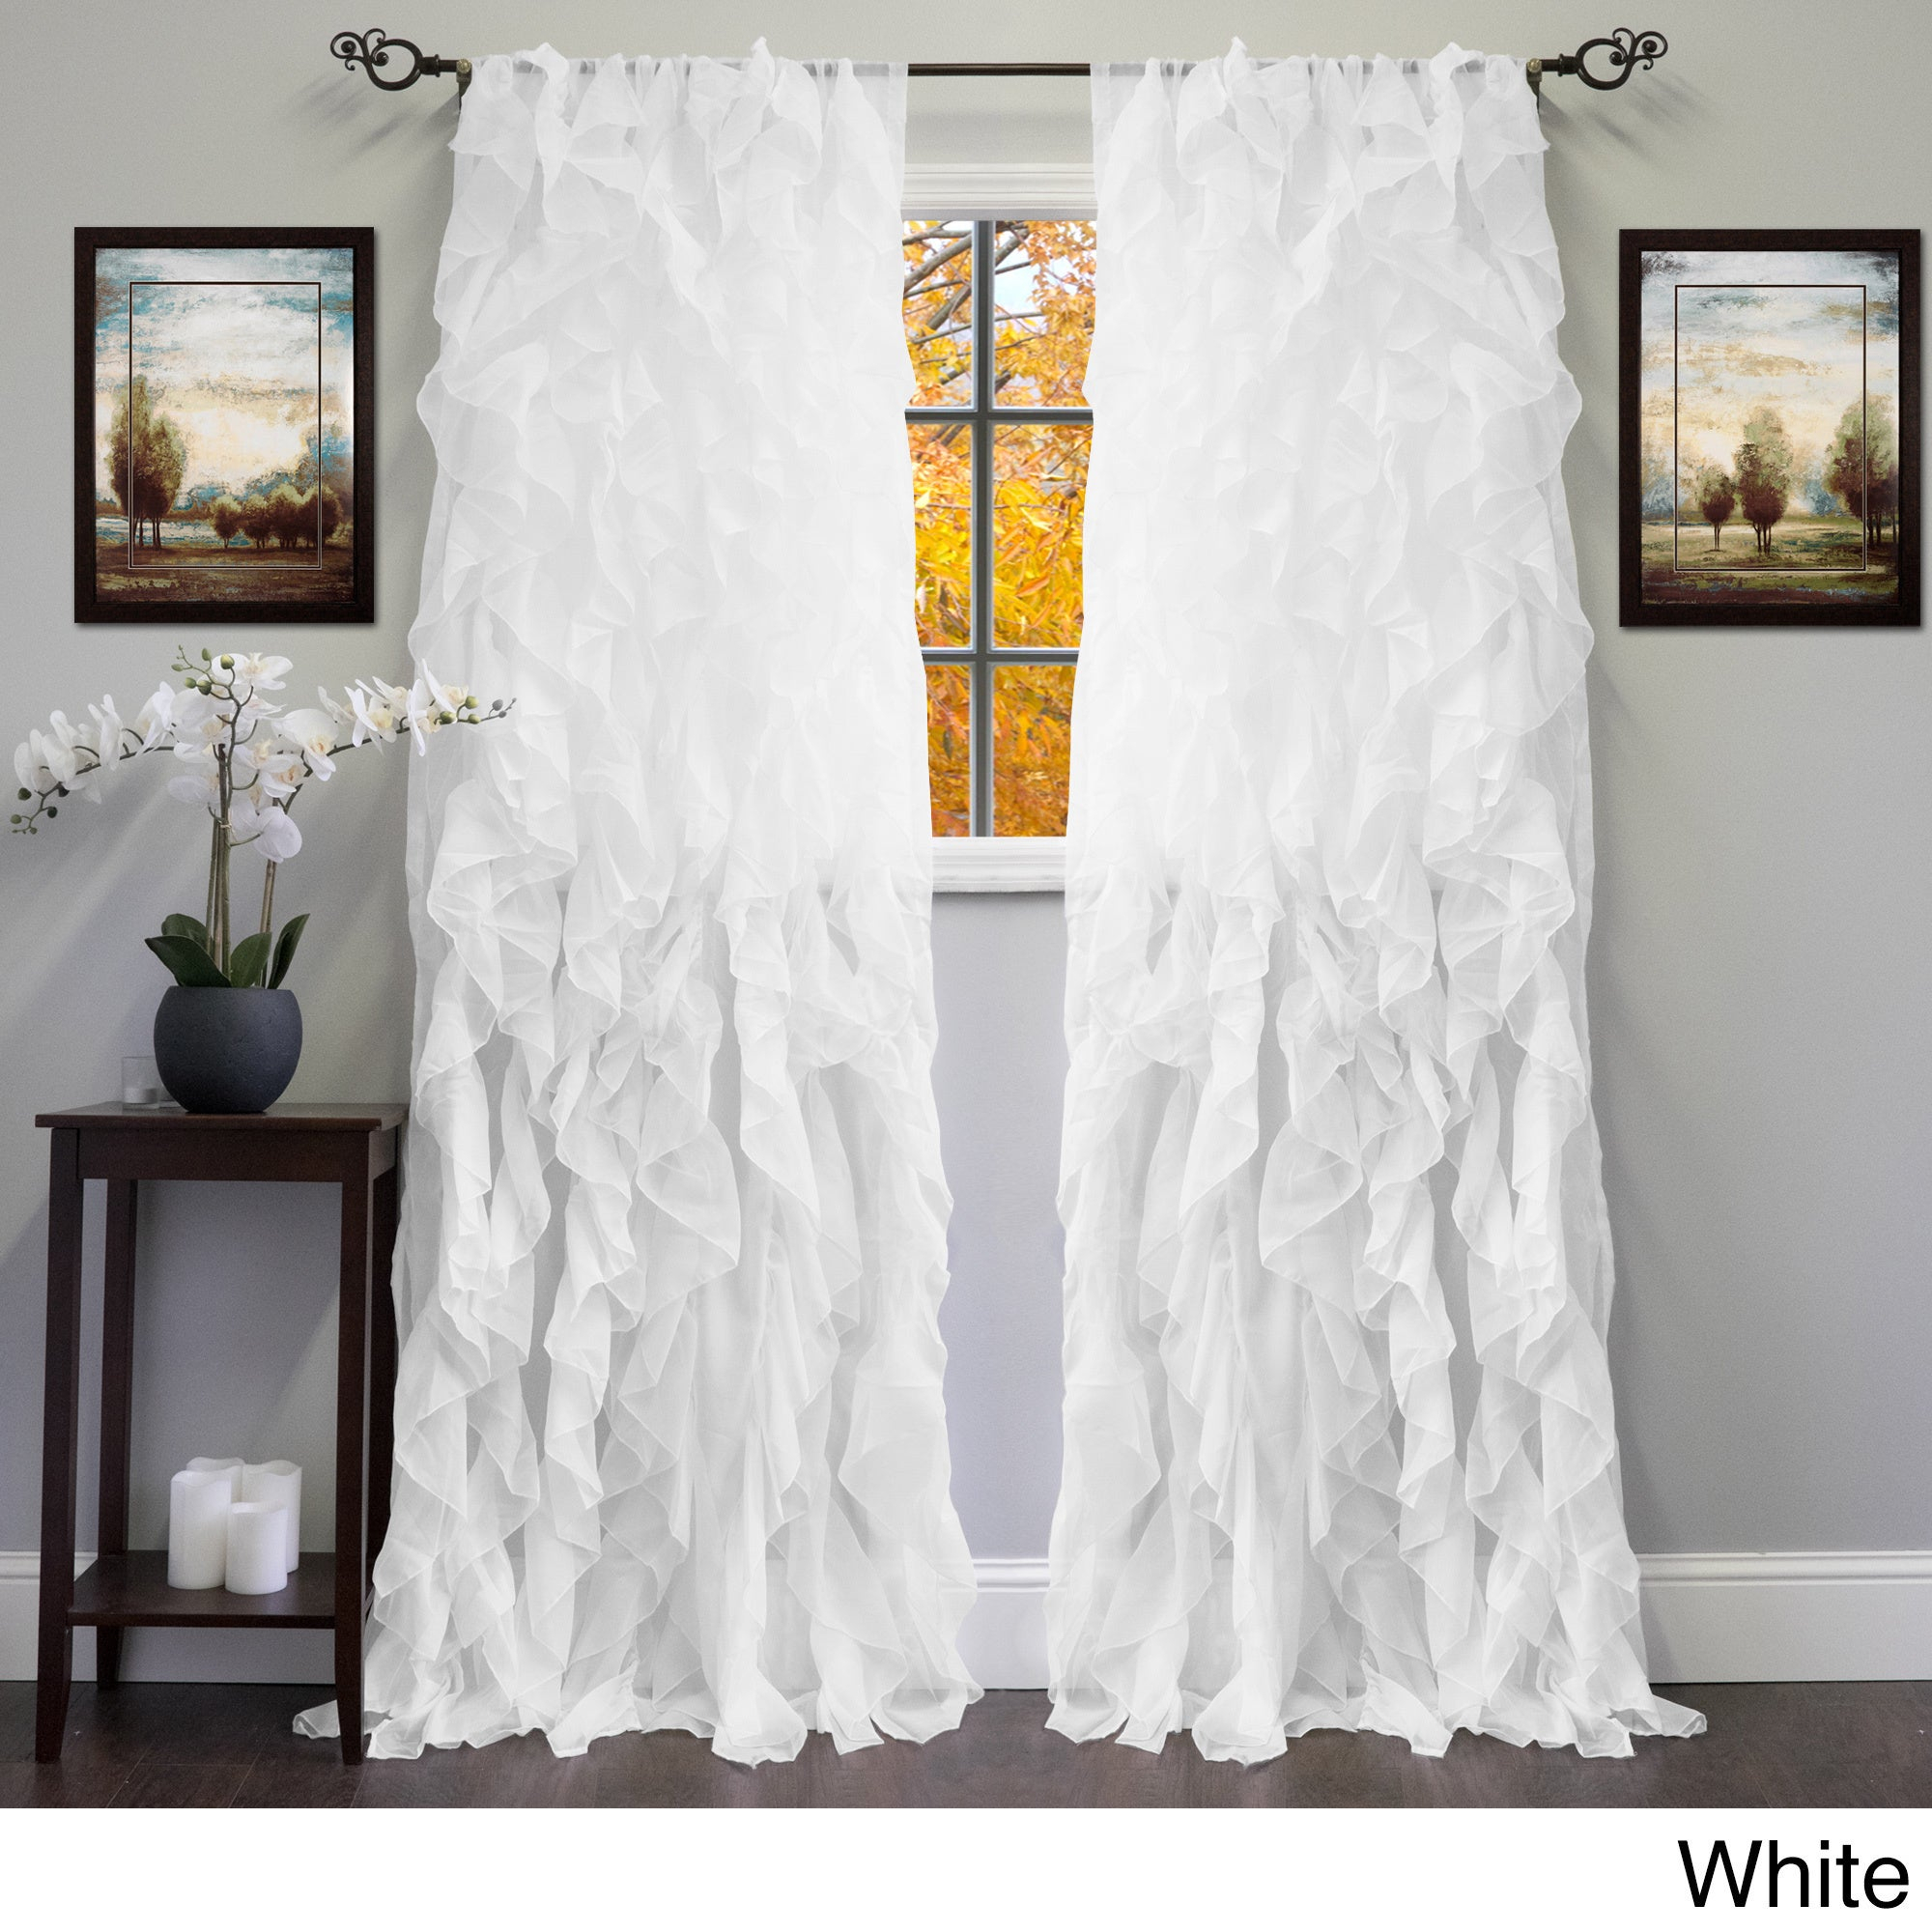 Popular Photo of Sheer Voile Ruffled Tier Window Curtain Panels